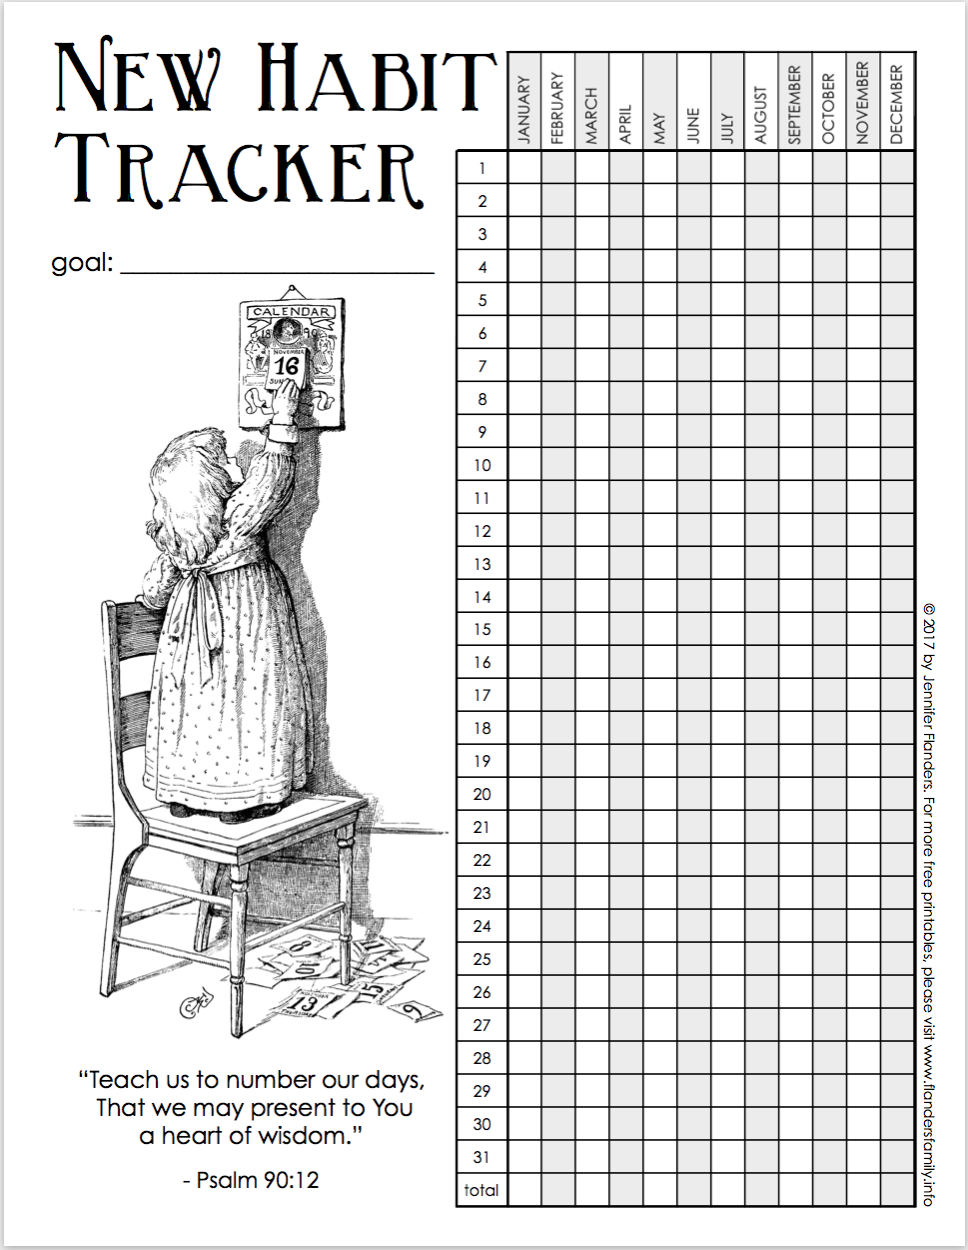 New Habit Tracking Chart - Free Printable